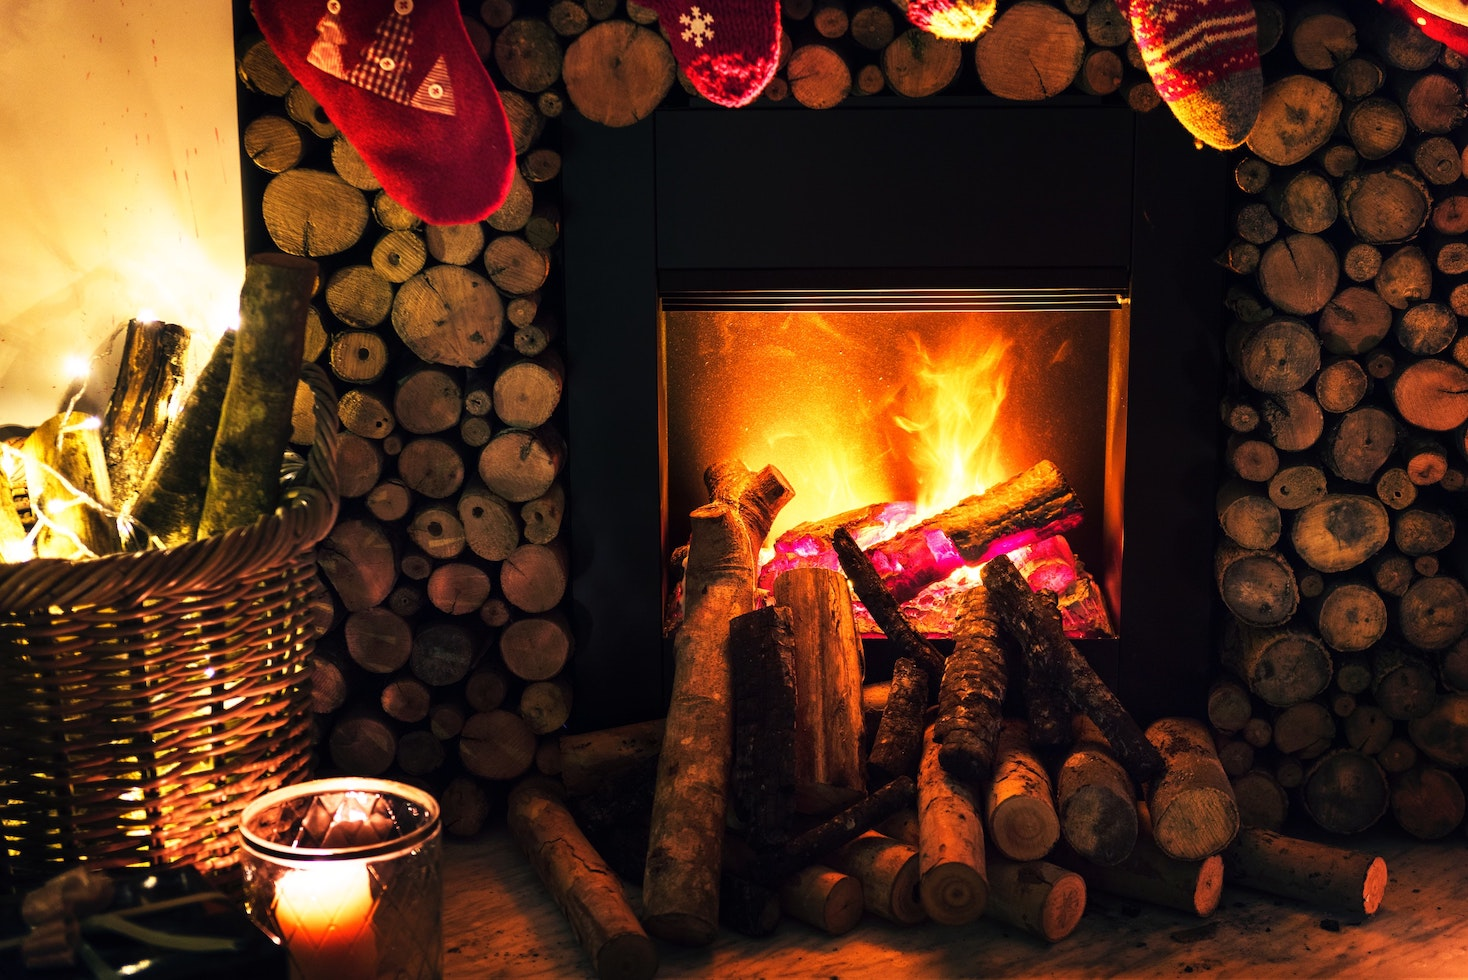 A cozy fire in a wood stove